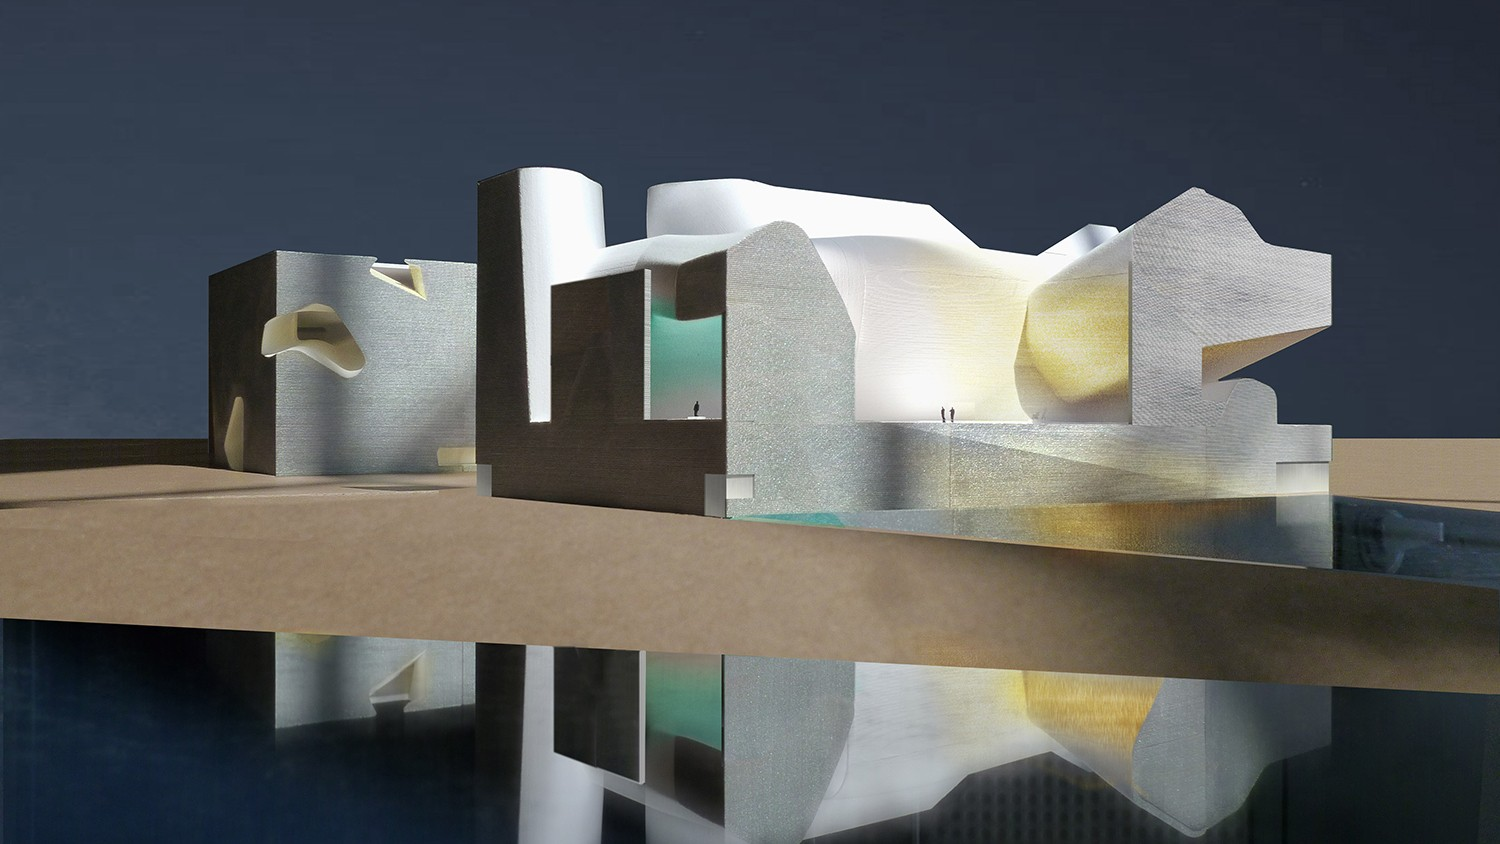 https://stevenholl.sfo2.digitaloceanspaces.com/uploads/projects/project-images/StevenHollArchitects_Tianjin_NWCornerview_2withentry2_west_WH.jpg